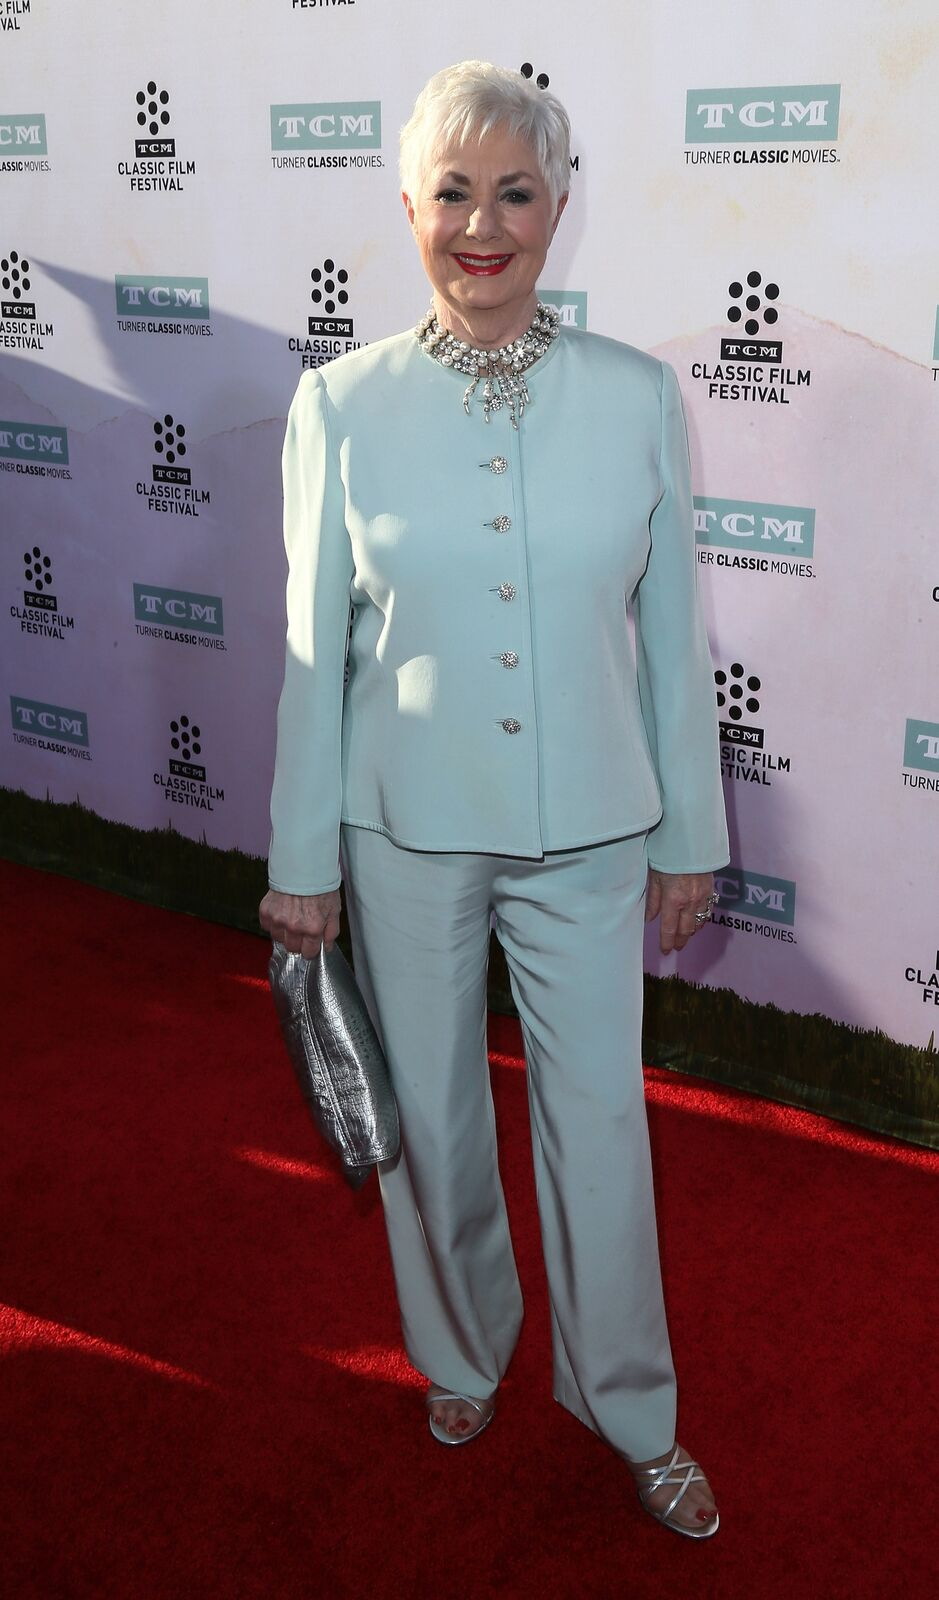 Actress Shirley Jones attends the 2015 TCM Classic Film Festival Opening Night Gala at the TCL Chinese Theatre IMAX on March 26, 2015 | Photo: Getty Images